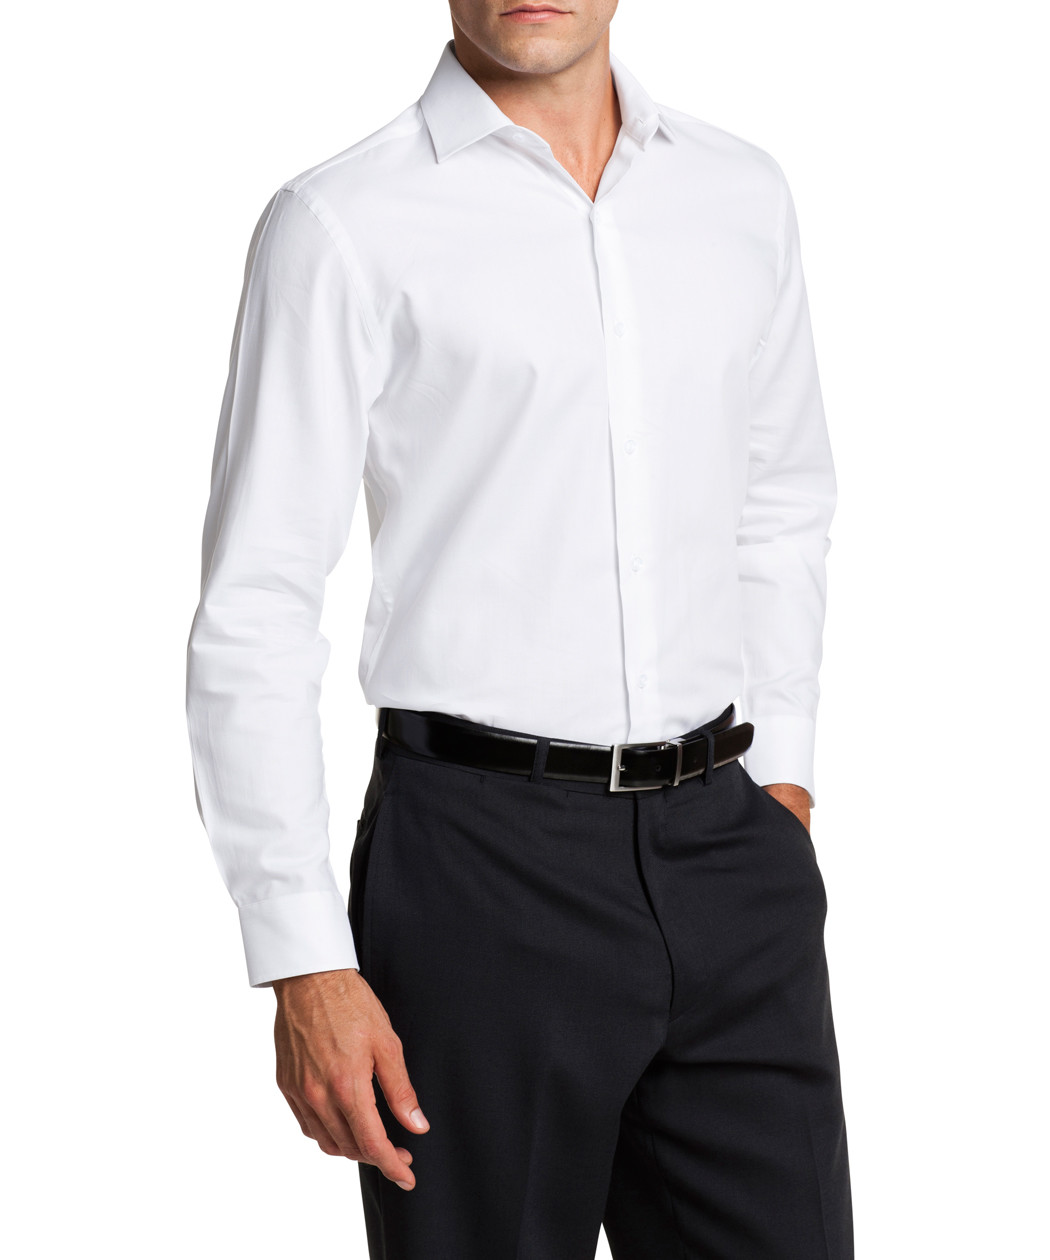 Van Heusen Pure Cotton Slim Fit Shirt Mens Shirt Van Heusen